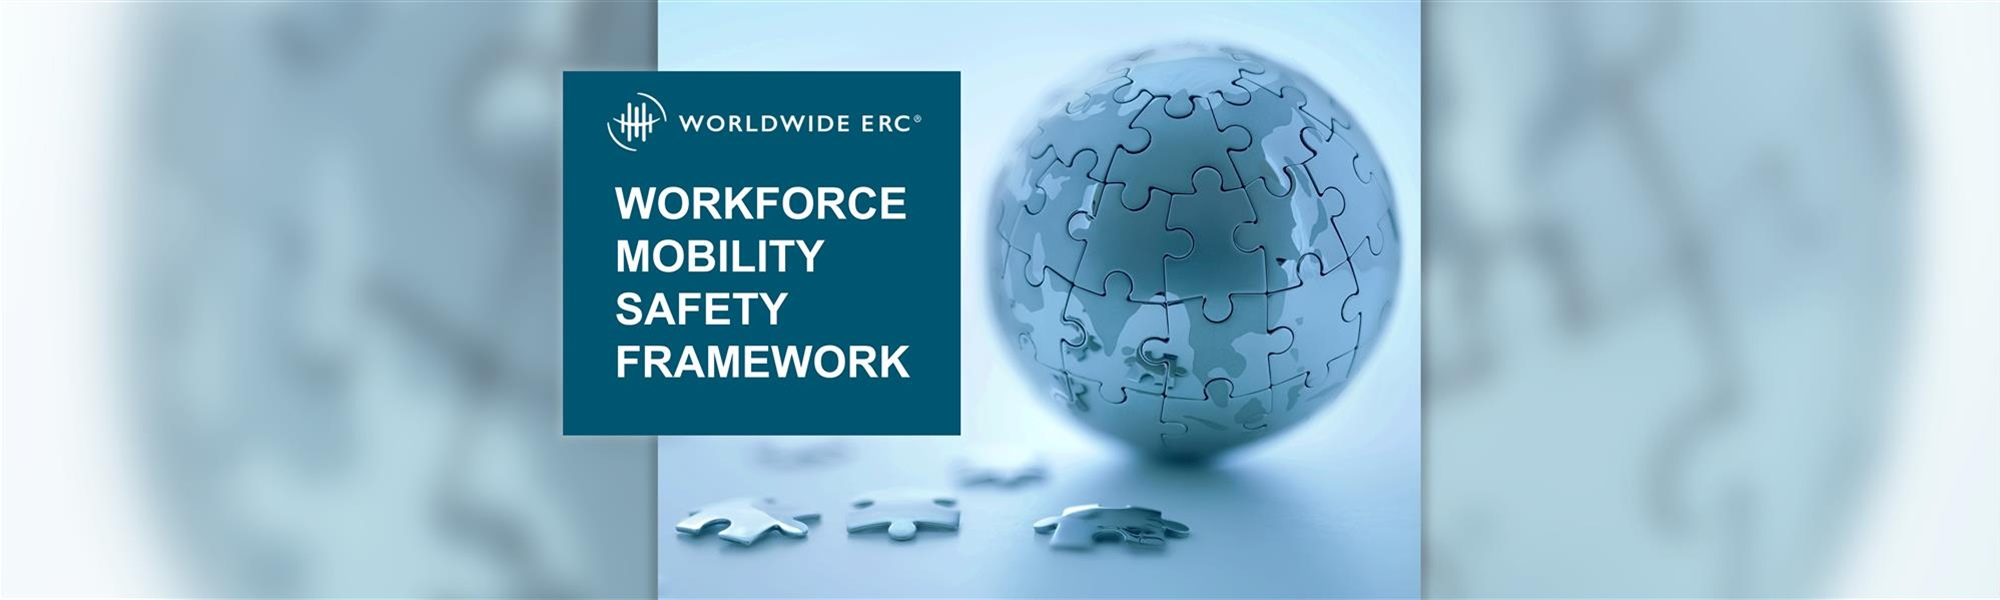 Workforce Mobility Safety Framework Guidelines Released